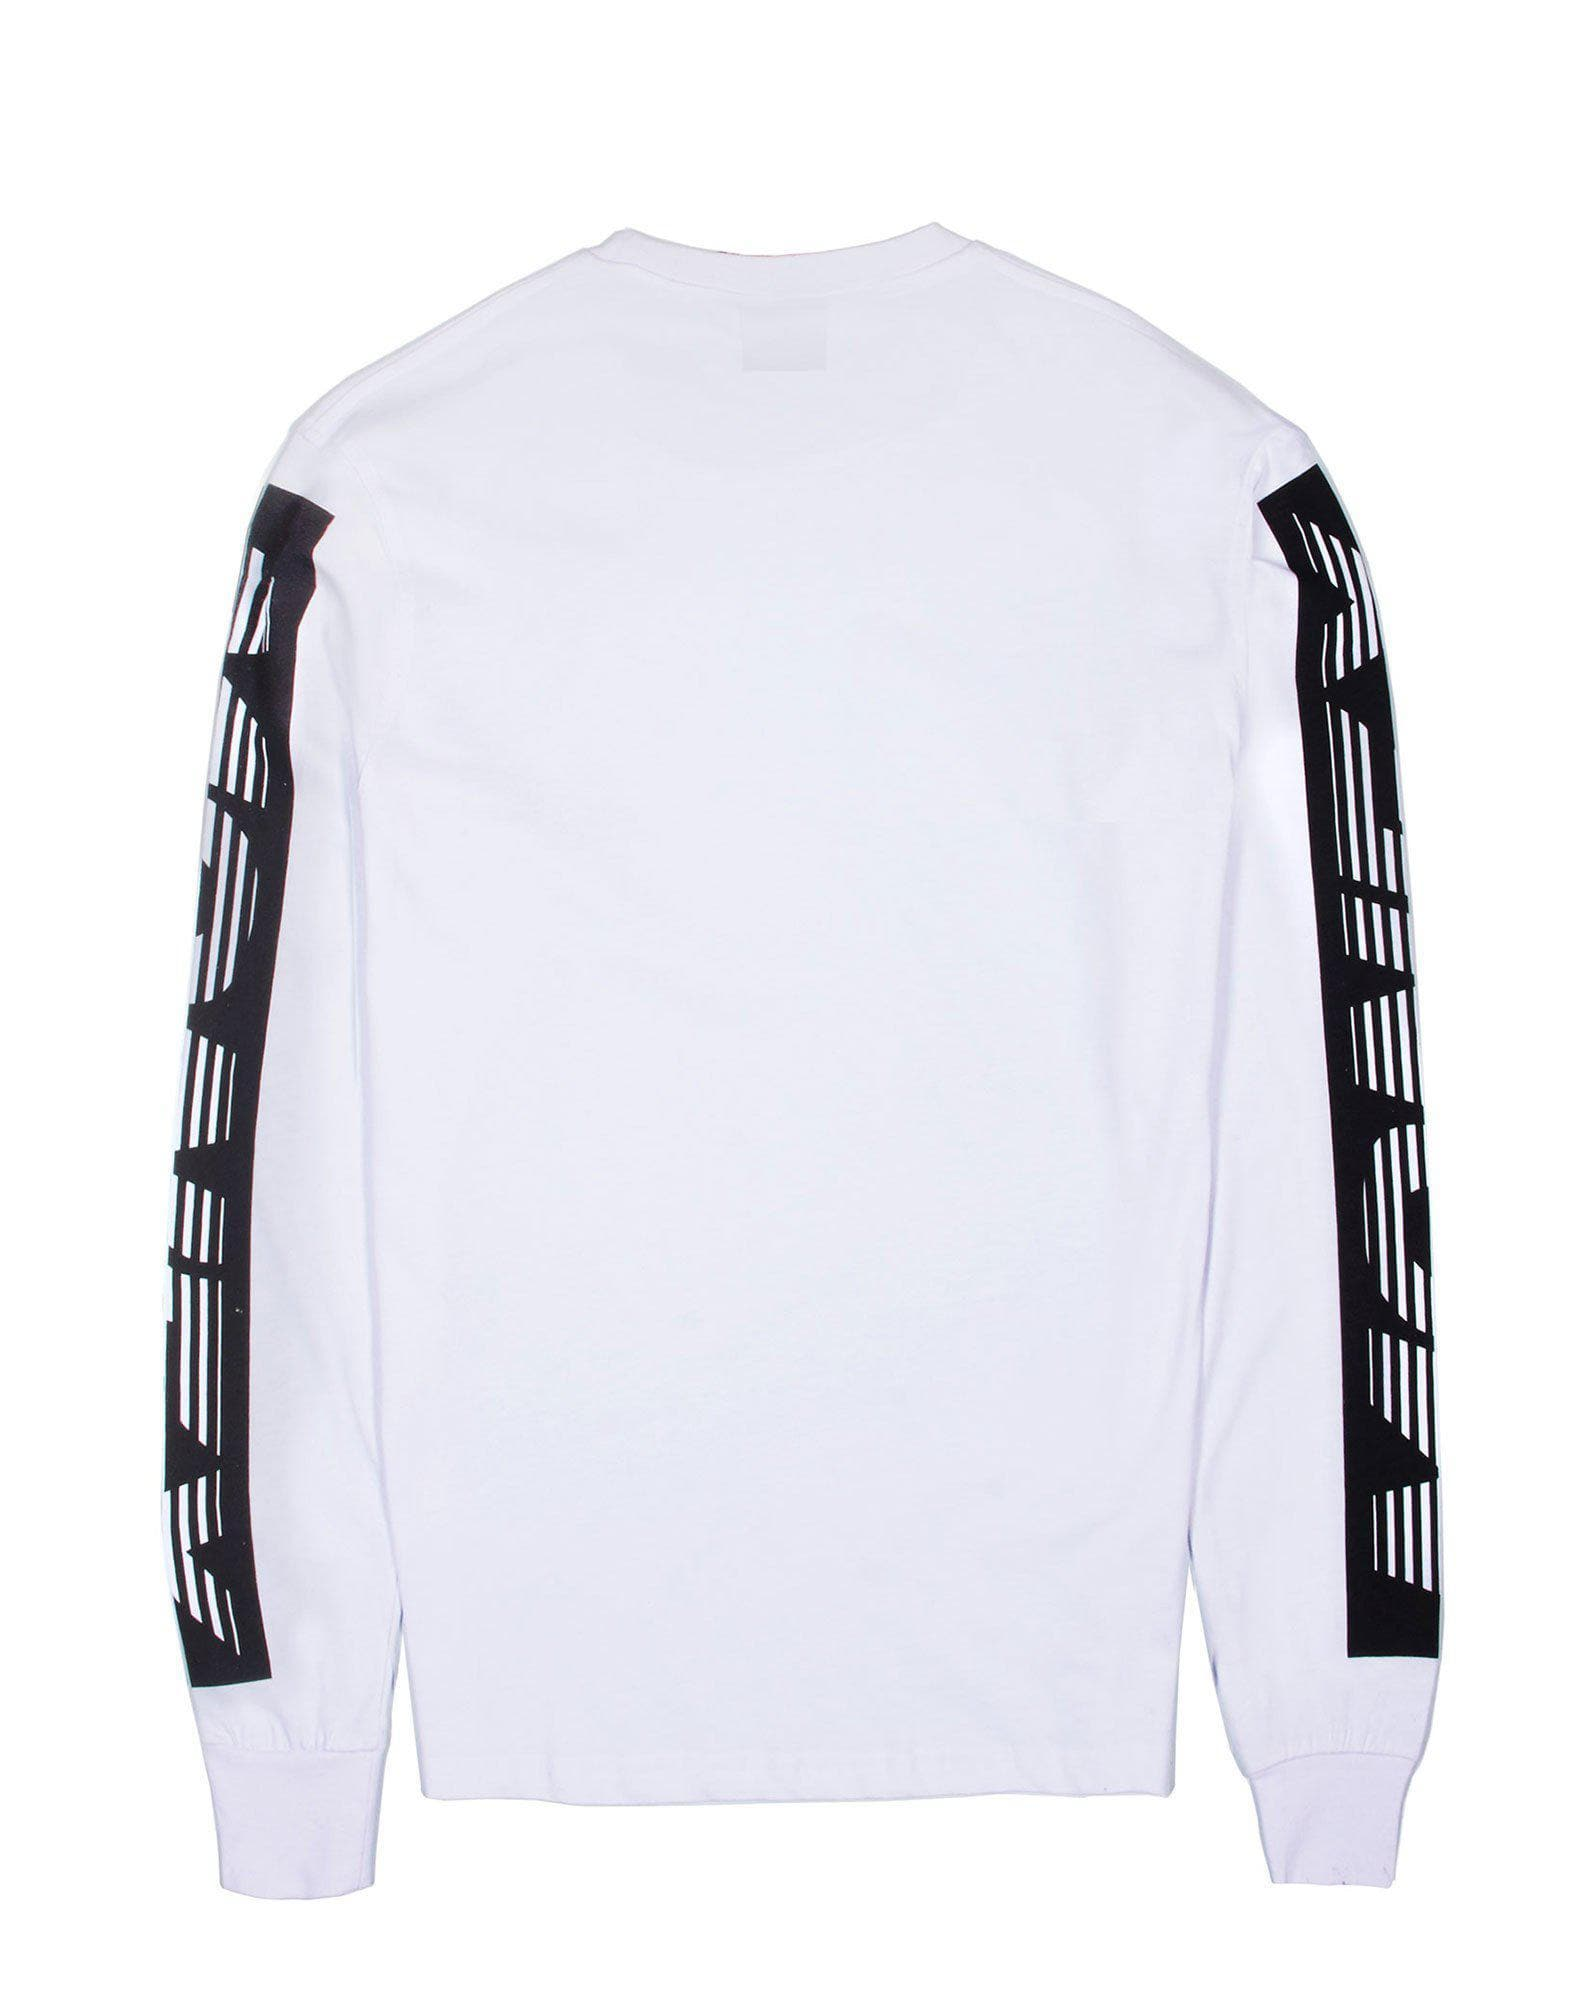 Money Clothing Contor L/S Tee